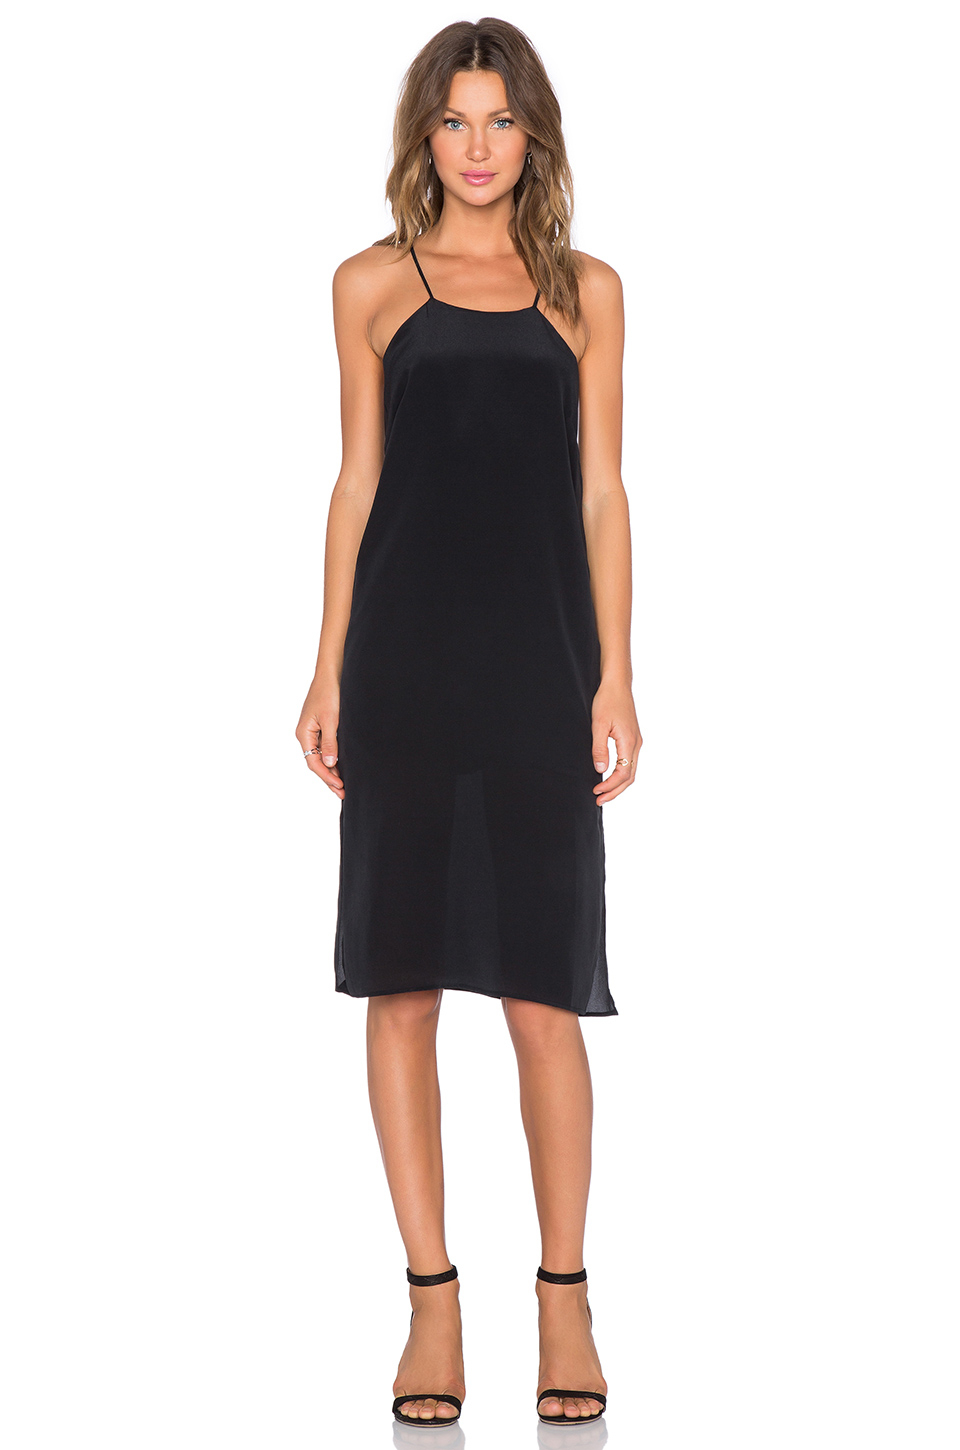 Anine bing Silk Dress With Thin Straps in Black | Lyst